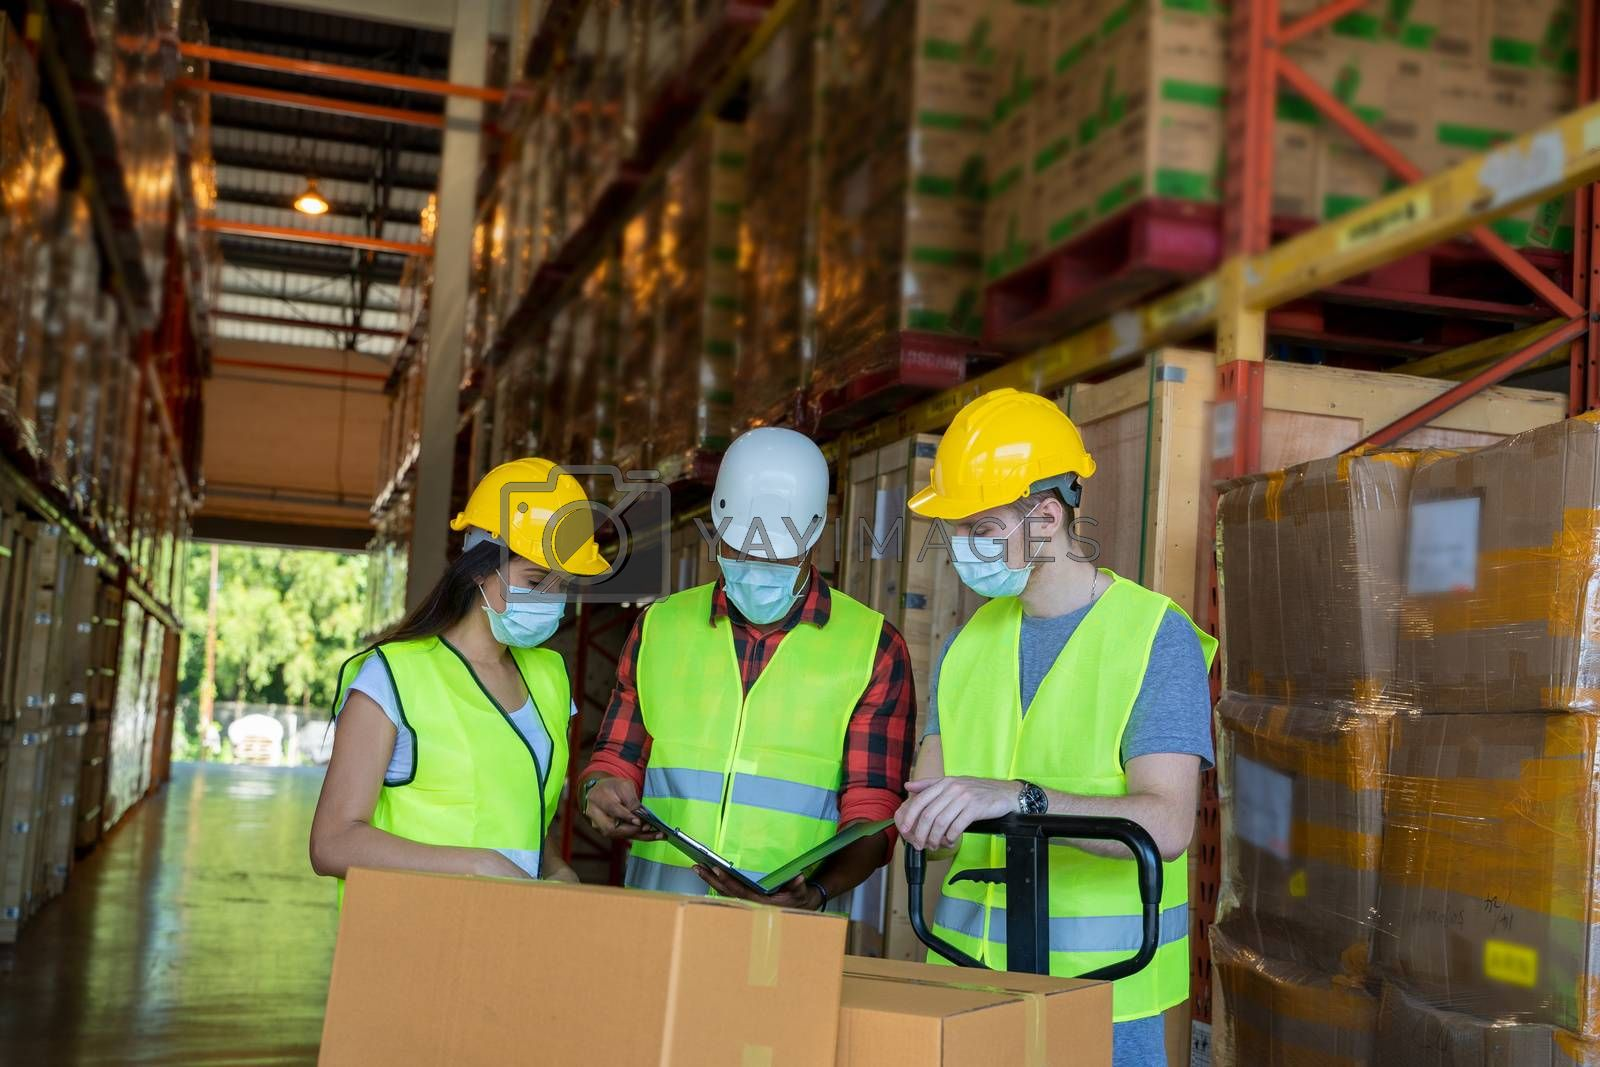 Warehouse workers wearing protective mask to Protect Against Covid-19 with clipboard during work in a warehouse.